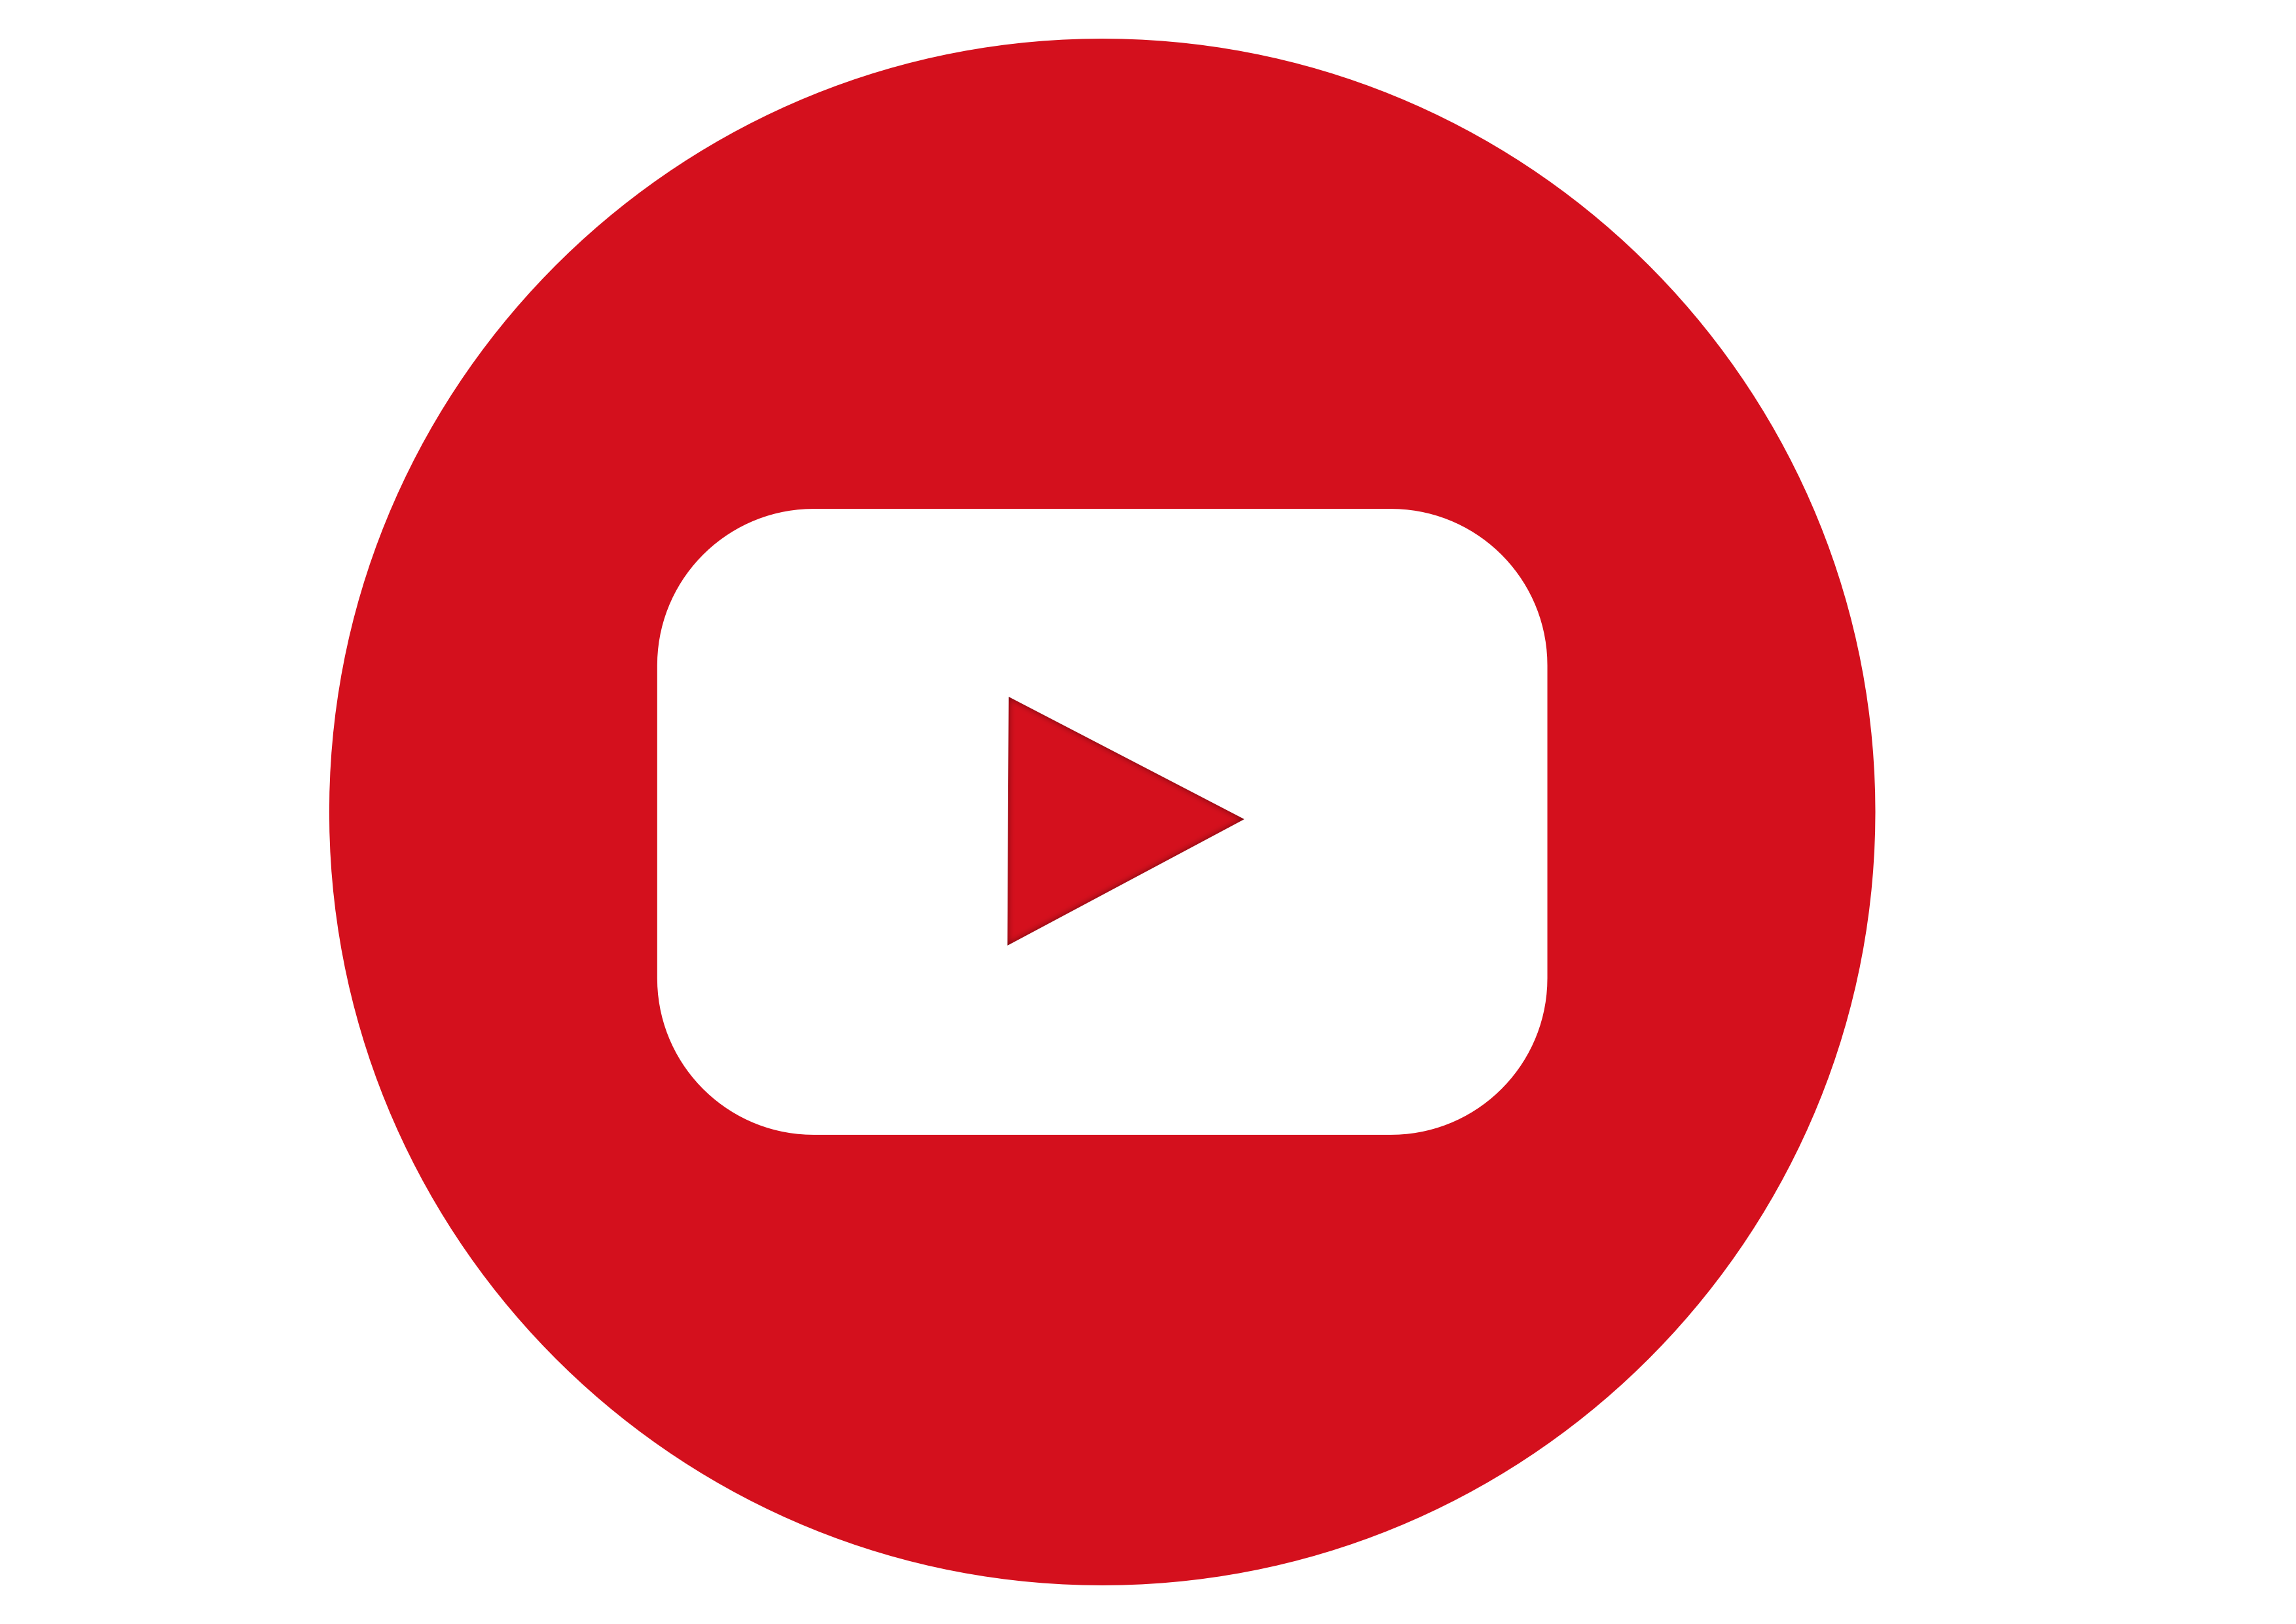 Youtube Icon Png & Free Youtube Icon.png Transparent ...